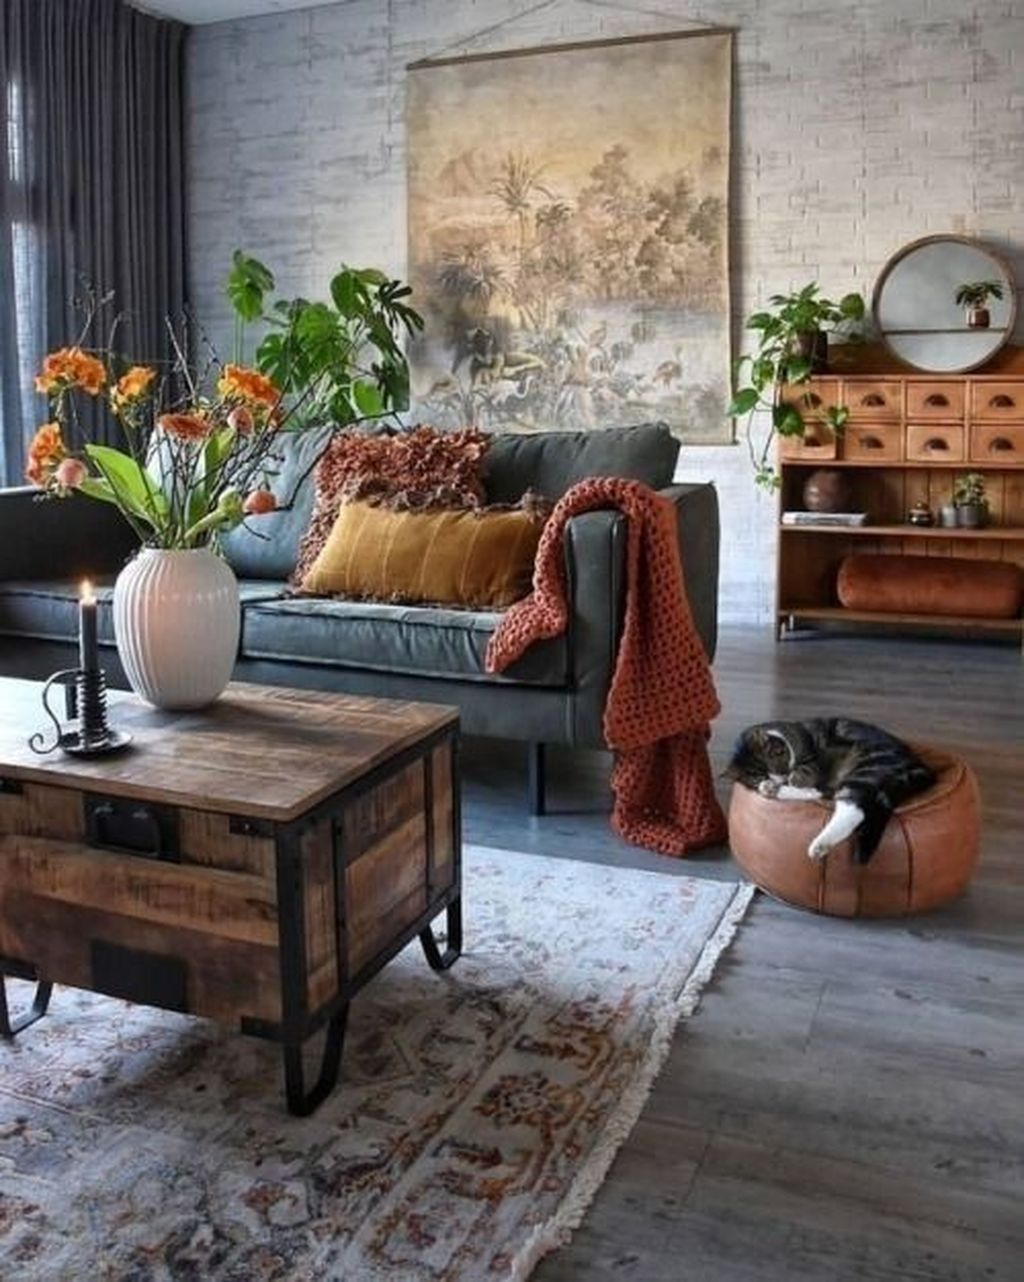 Stunning Rustic Interior Design Ideas That You Will Like 20